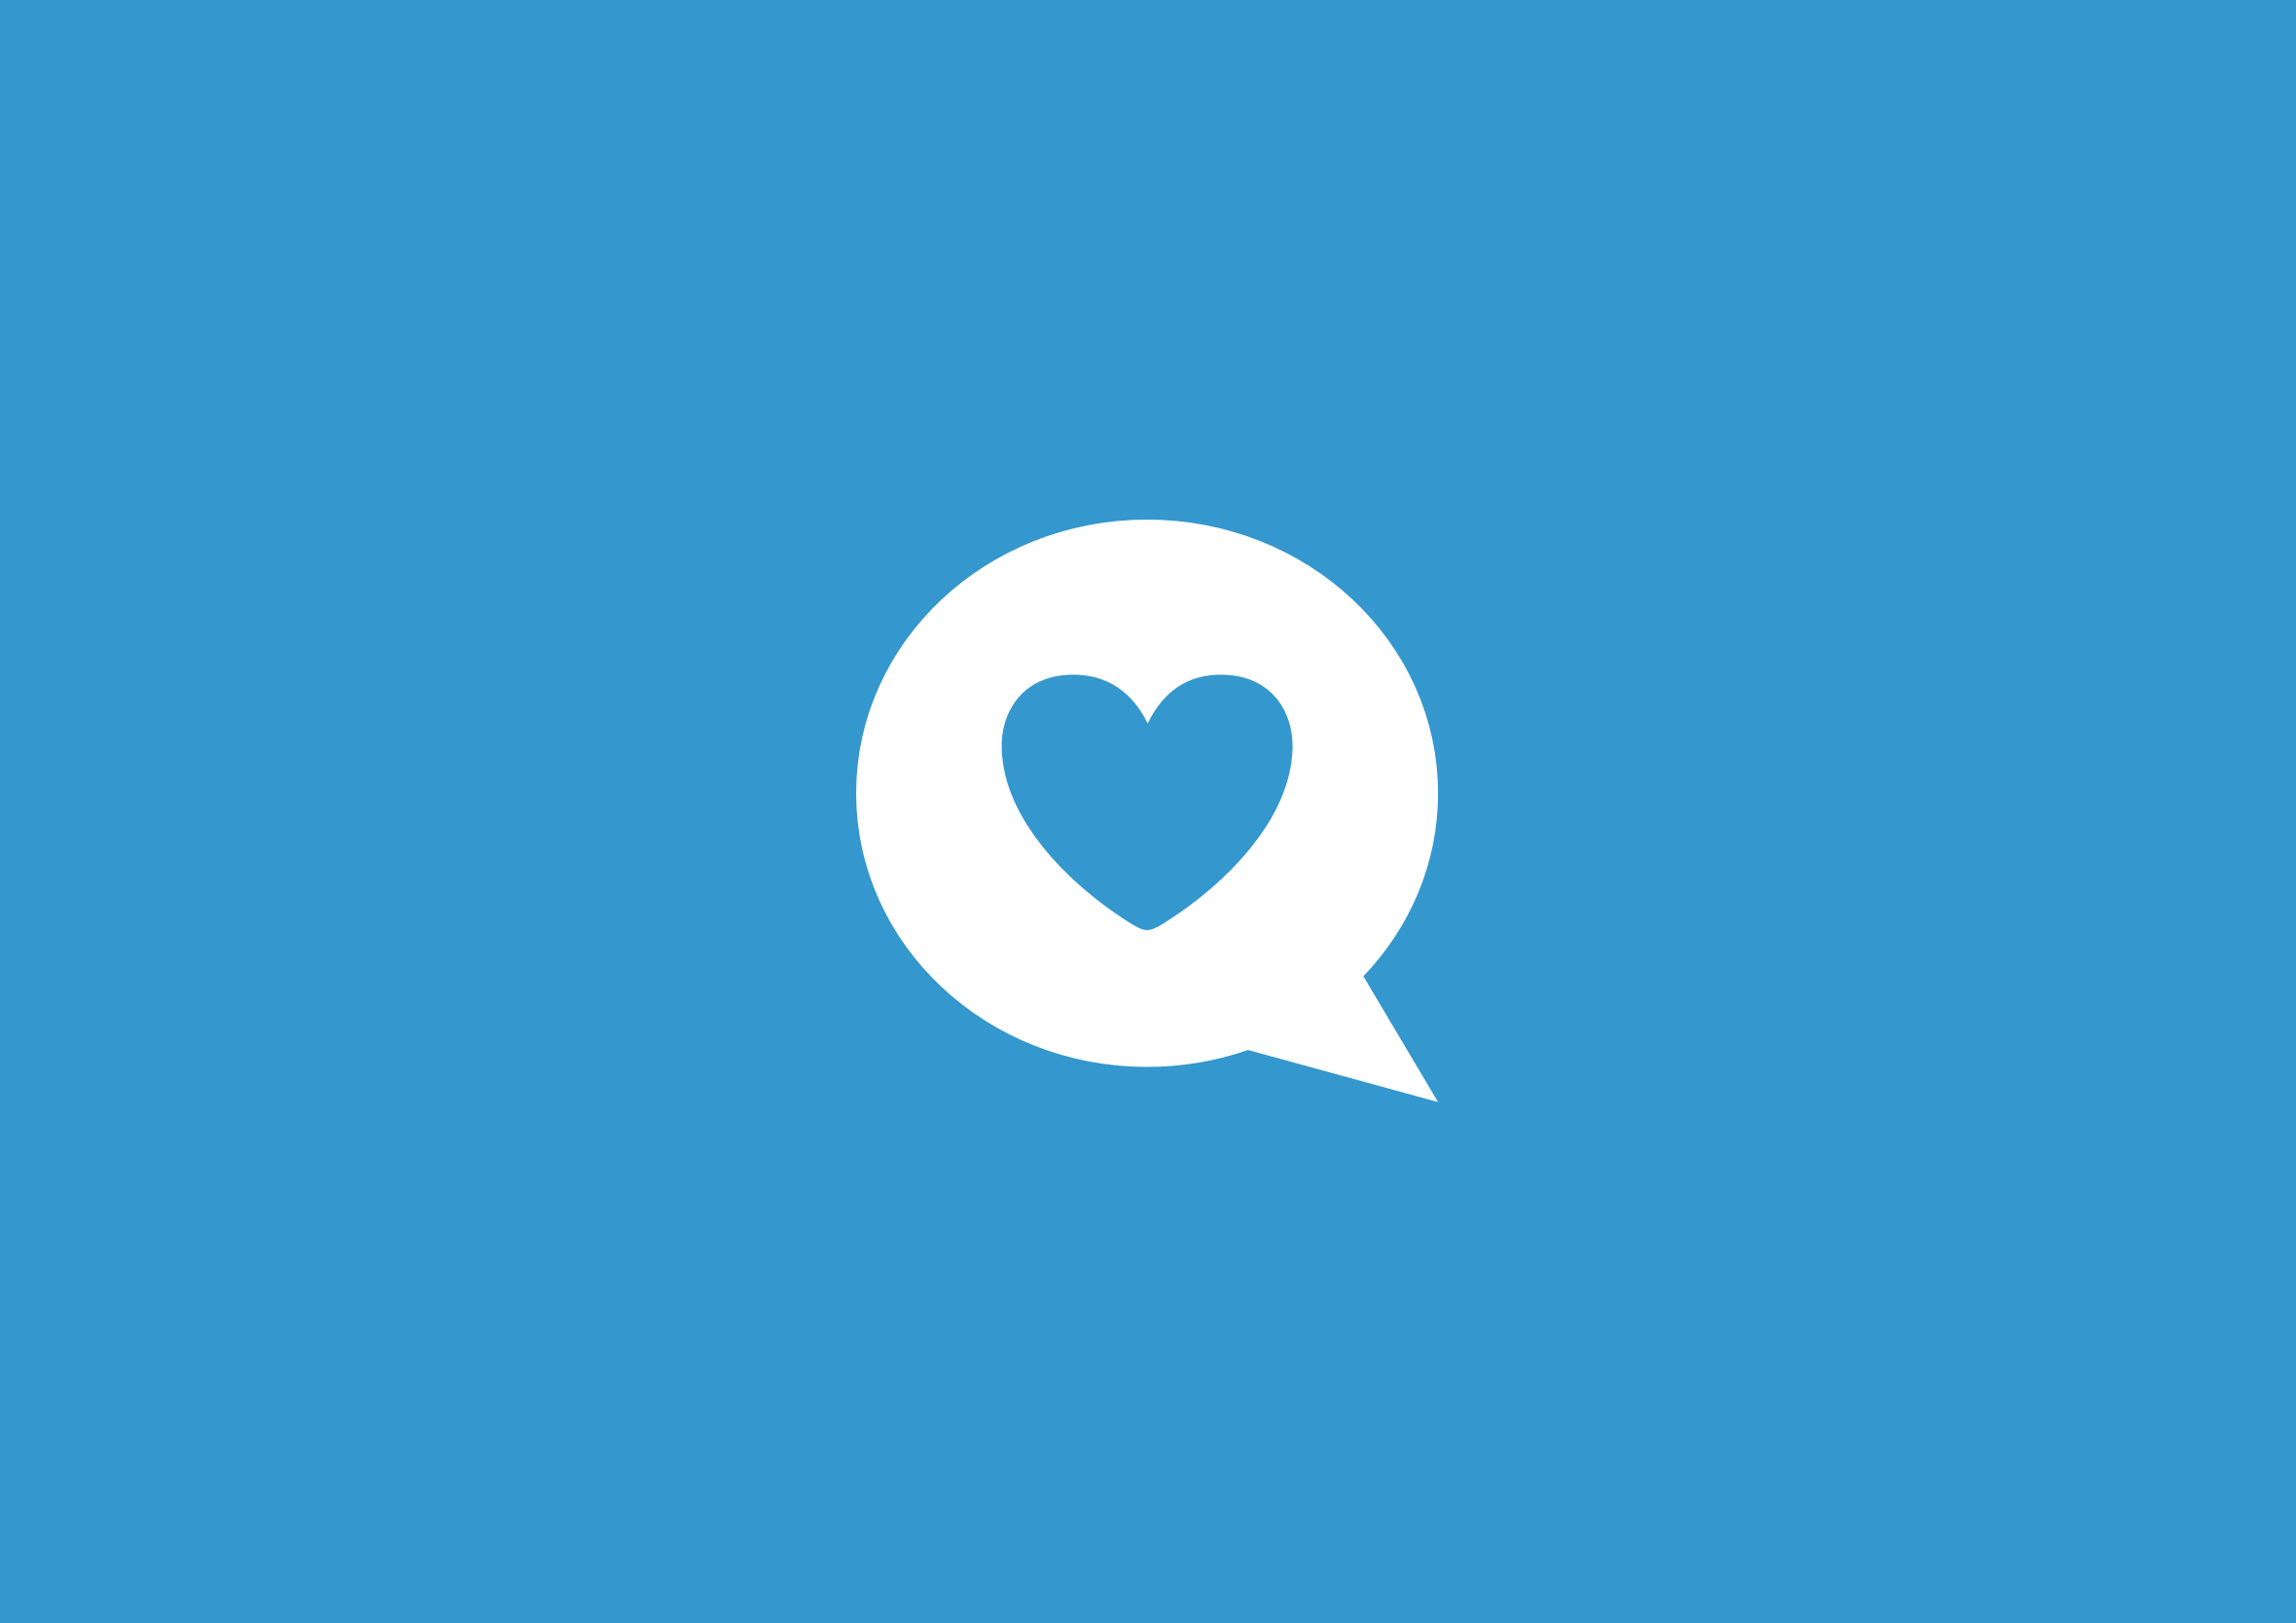 we-love-to-chat-blue